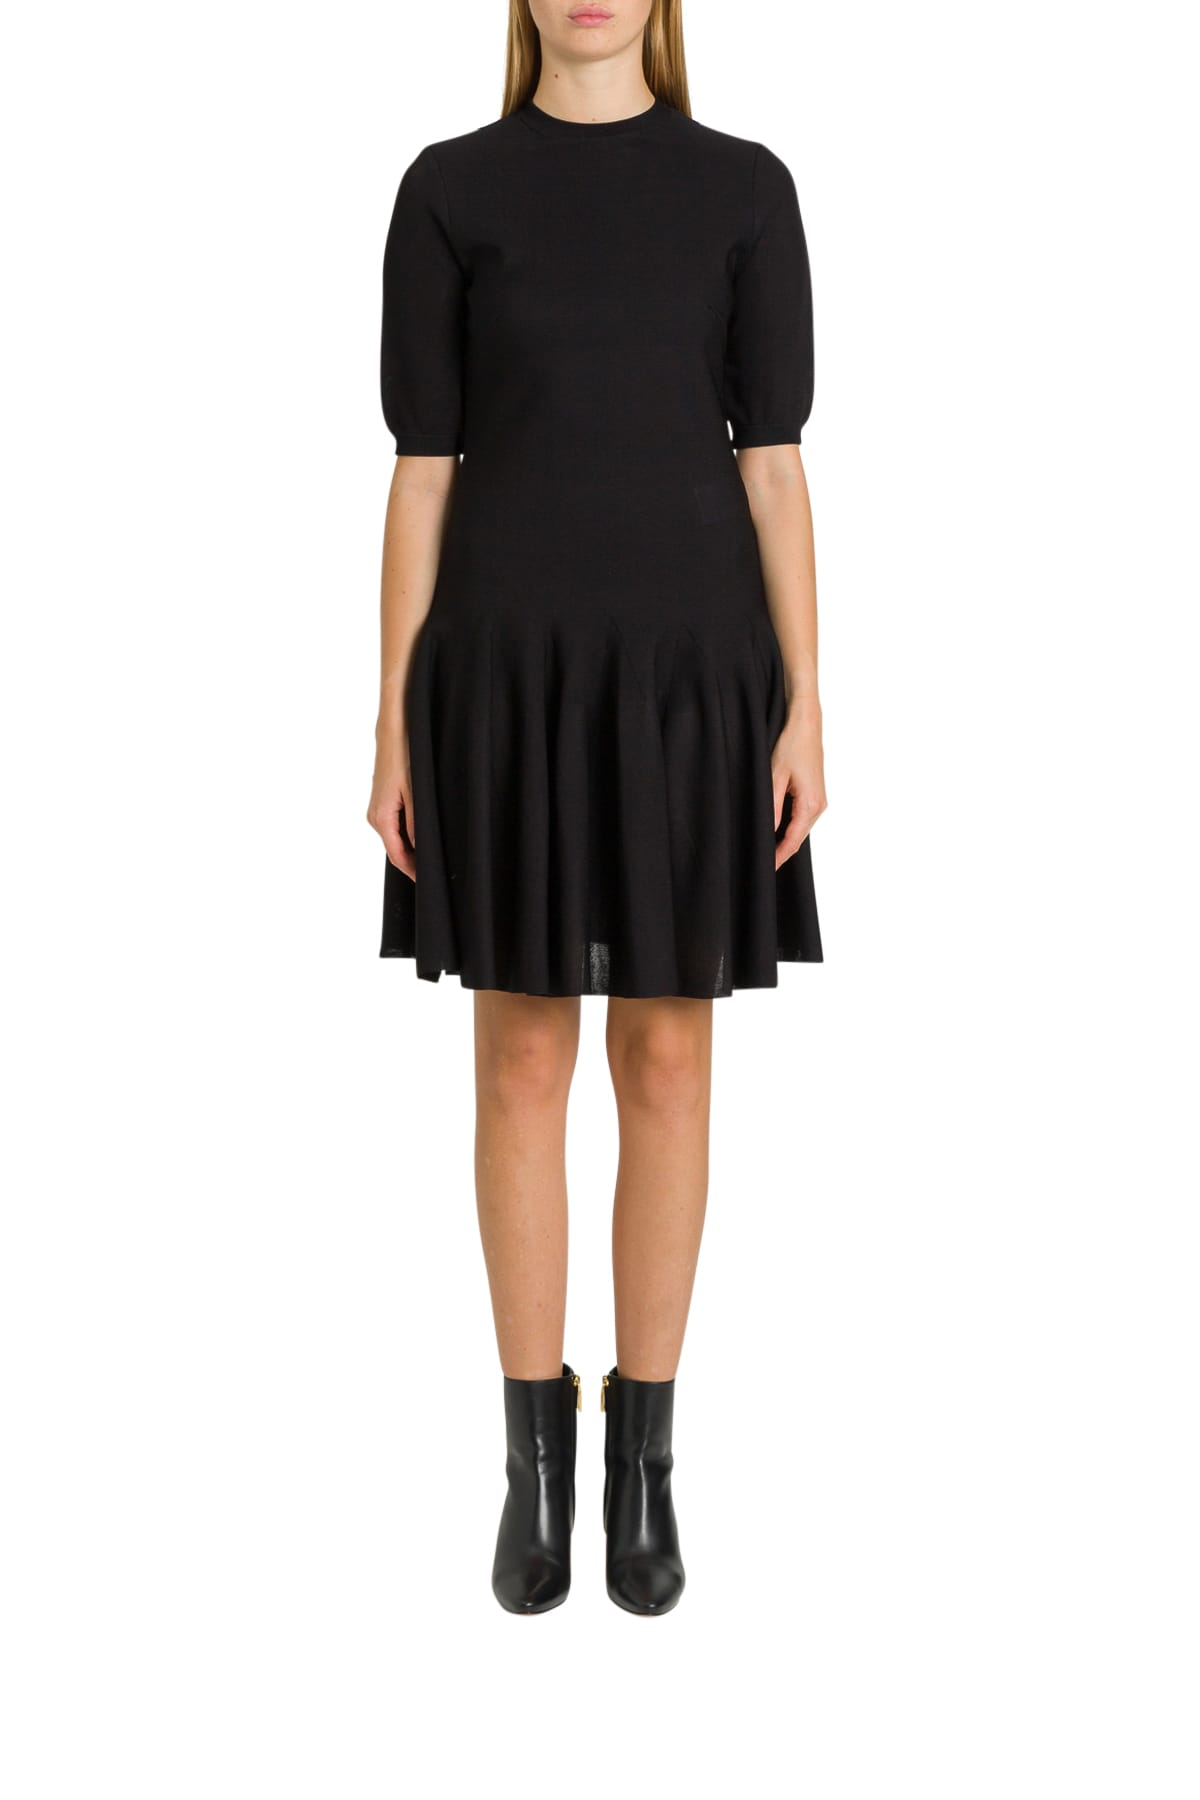 Buy Givenchy Short Dress In Knit online, shop Givenchy with free shipping